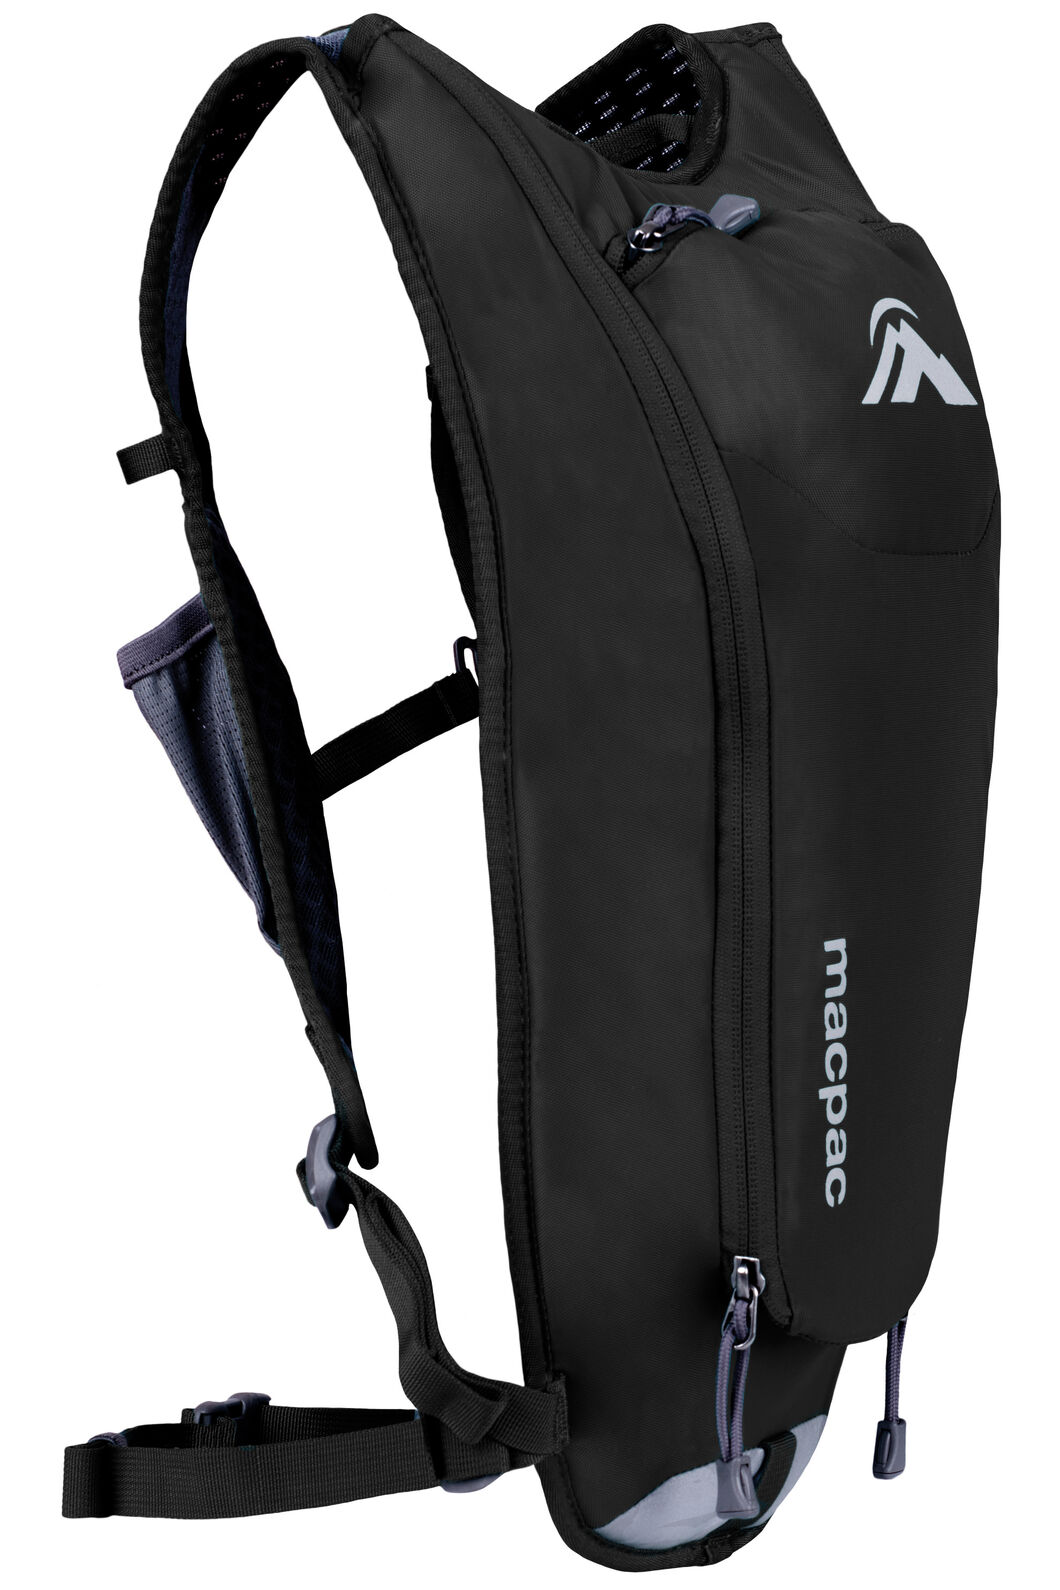 Amp H2O 2L Hydration Pack, Black, hi-res